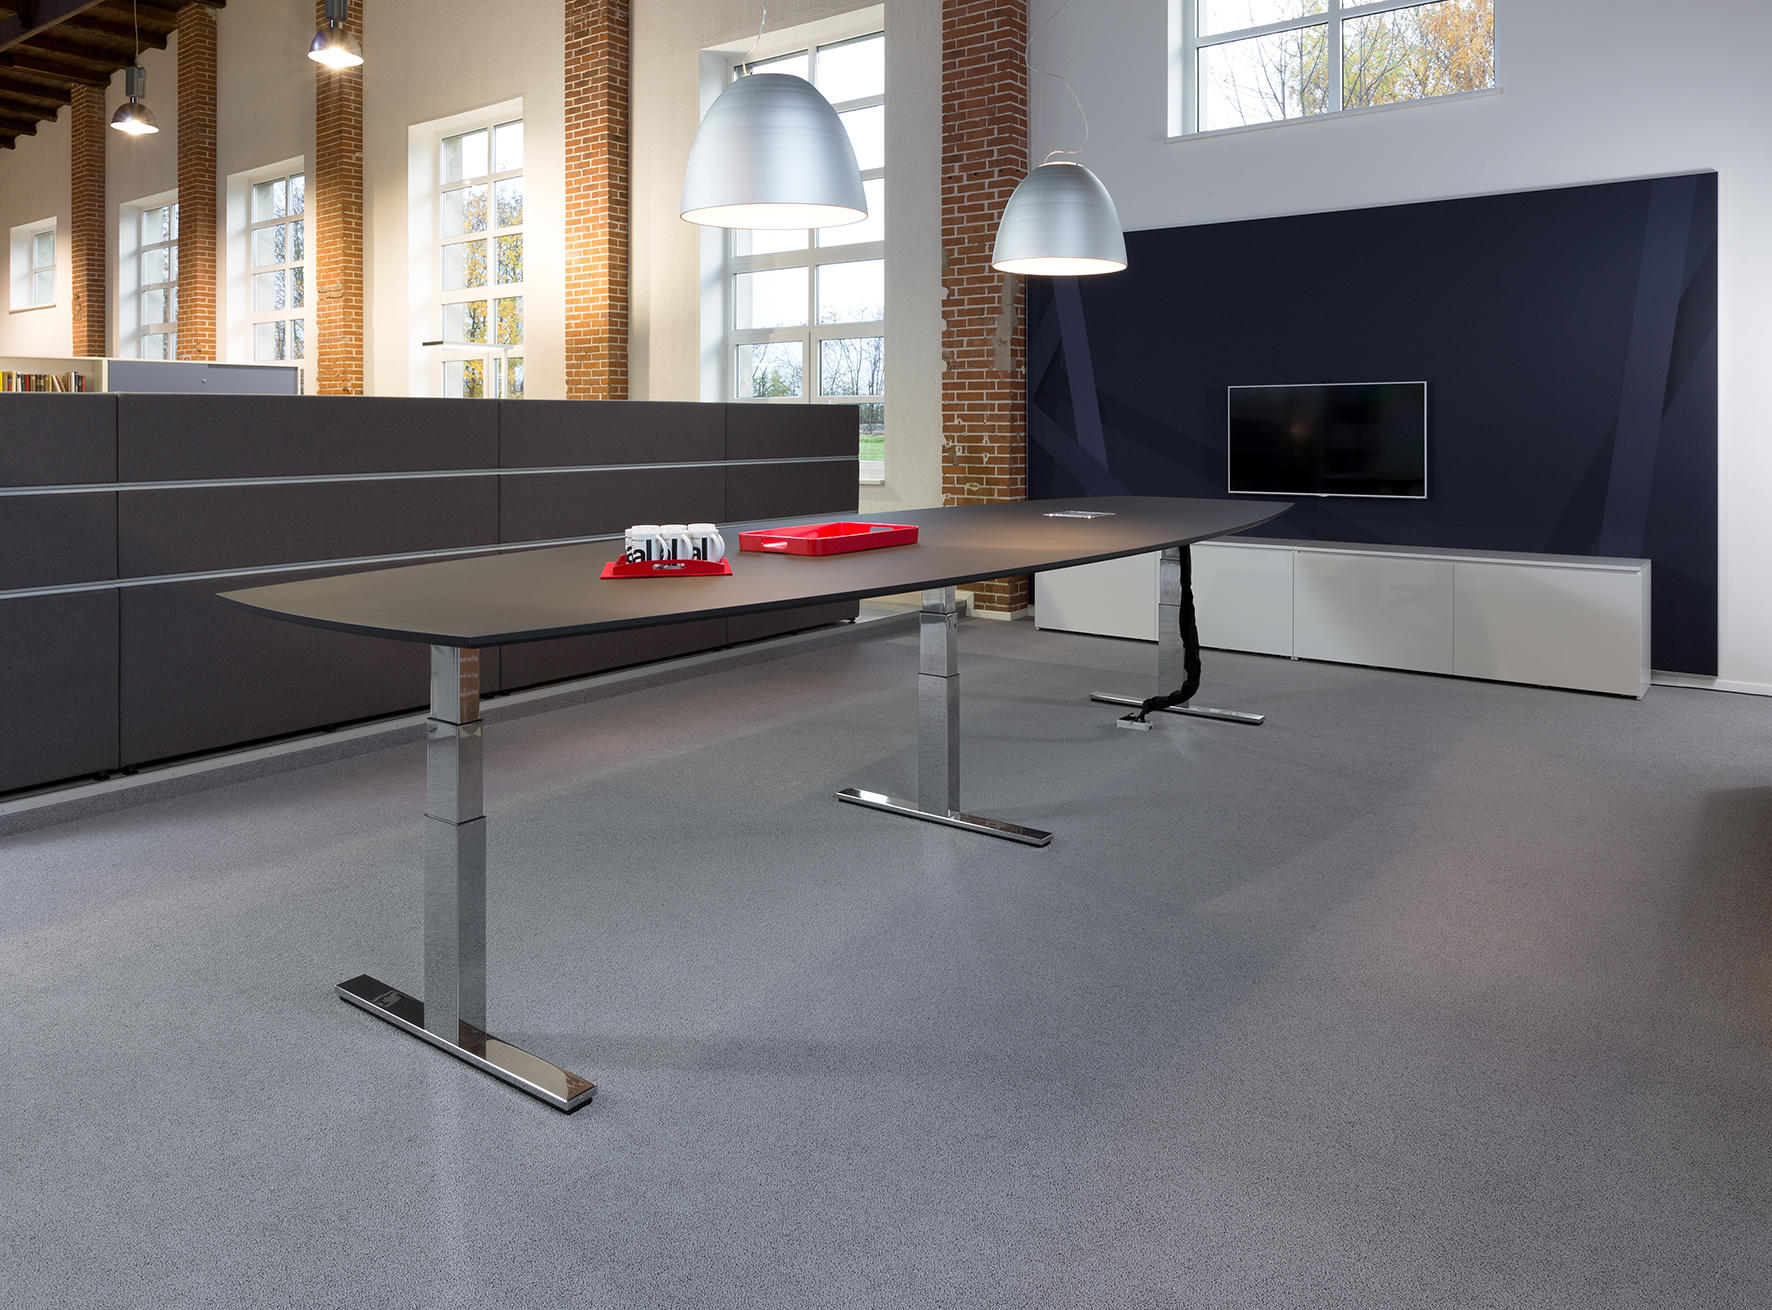 Büromöbel Winea Pro| Conference Table - Contract Tables From Wini